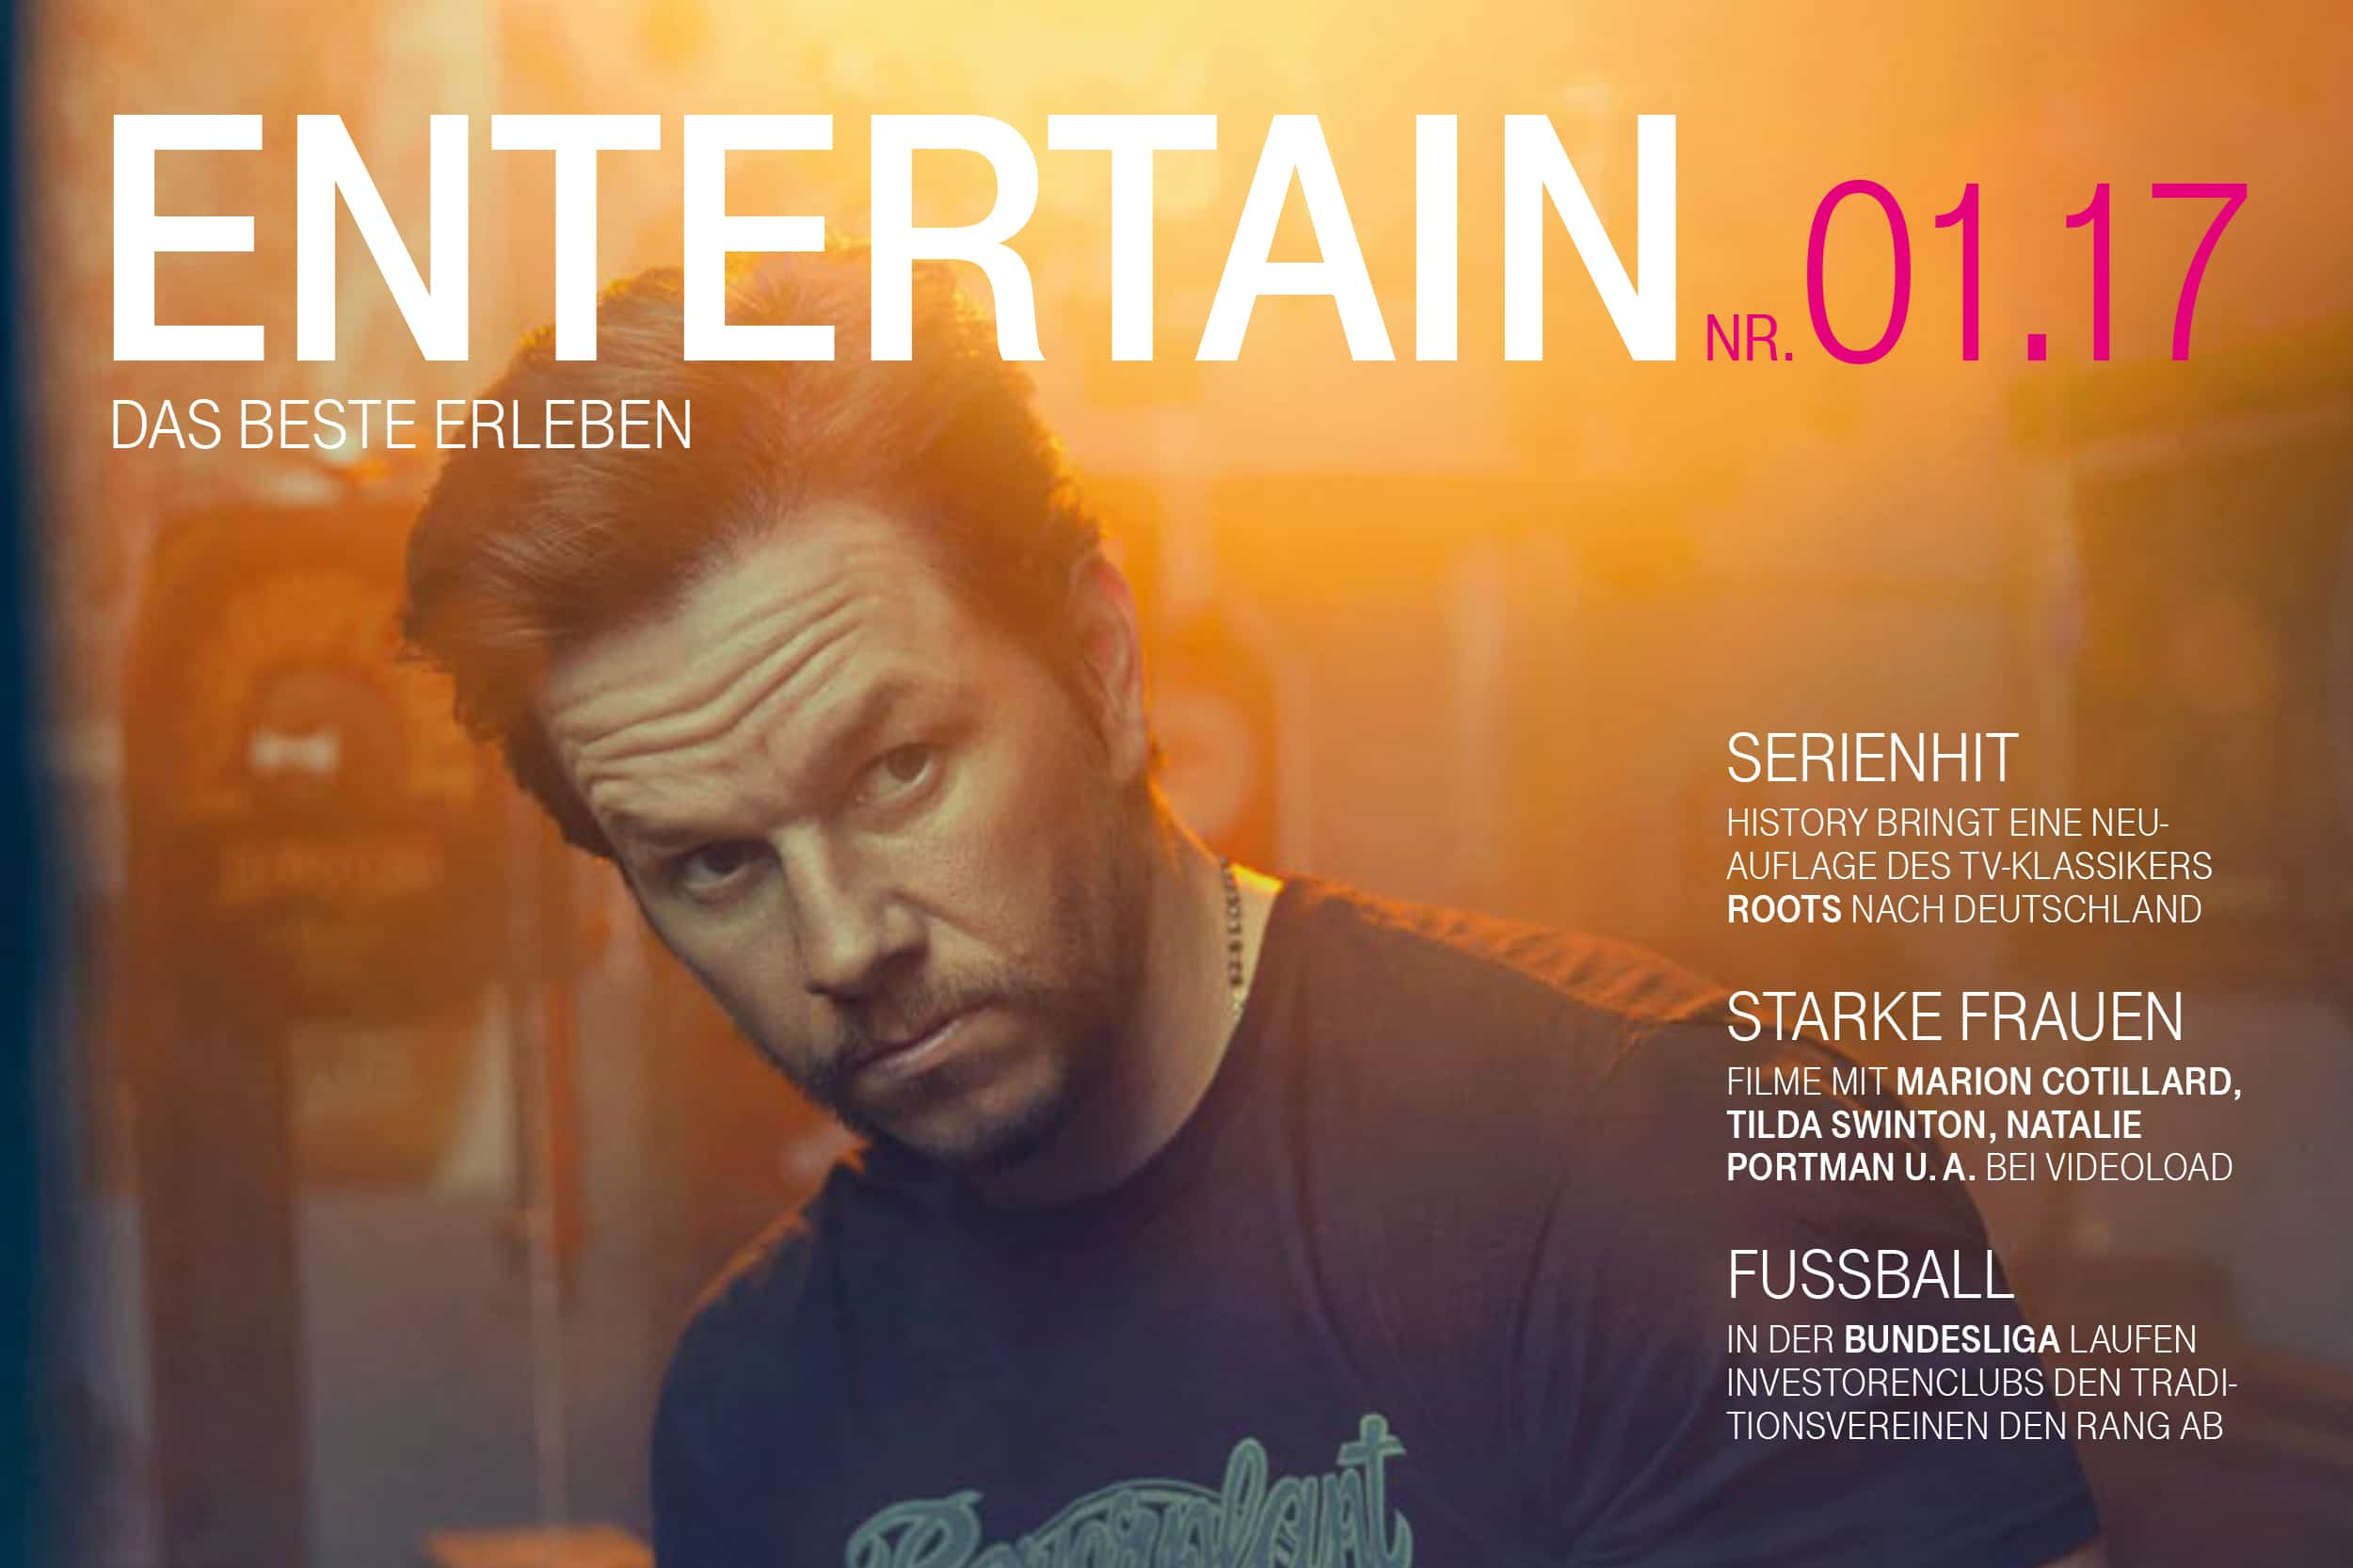 Cover detail of the magazine Entertain